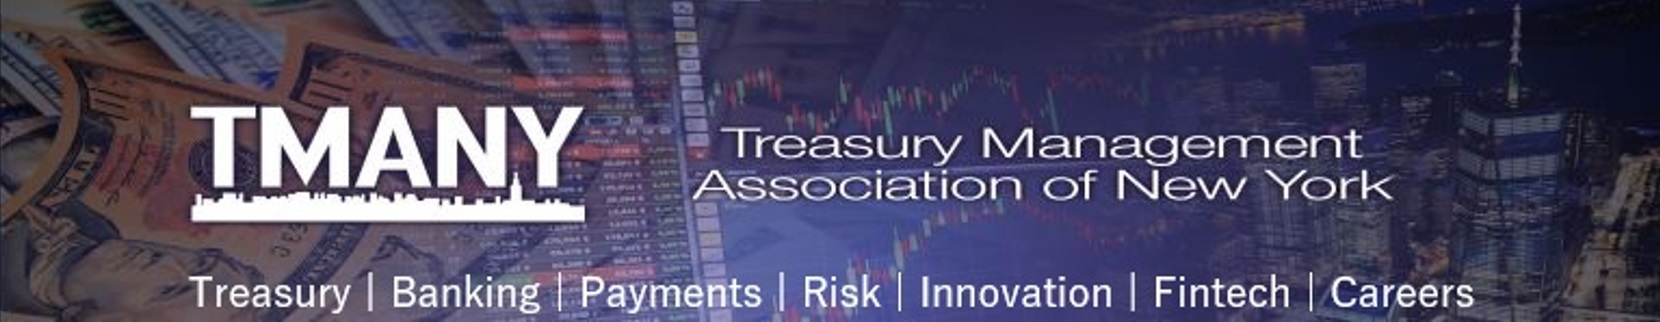 TMANY | Treasury Management Association of New York